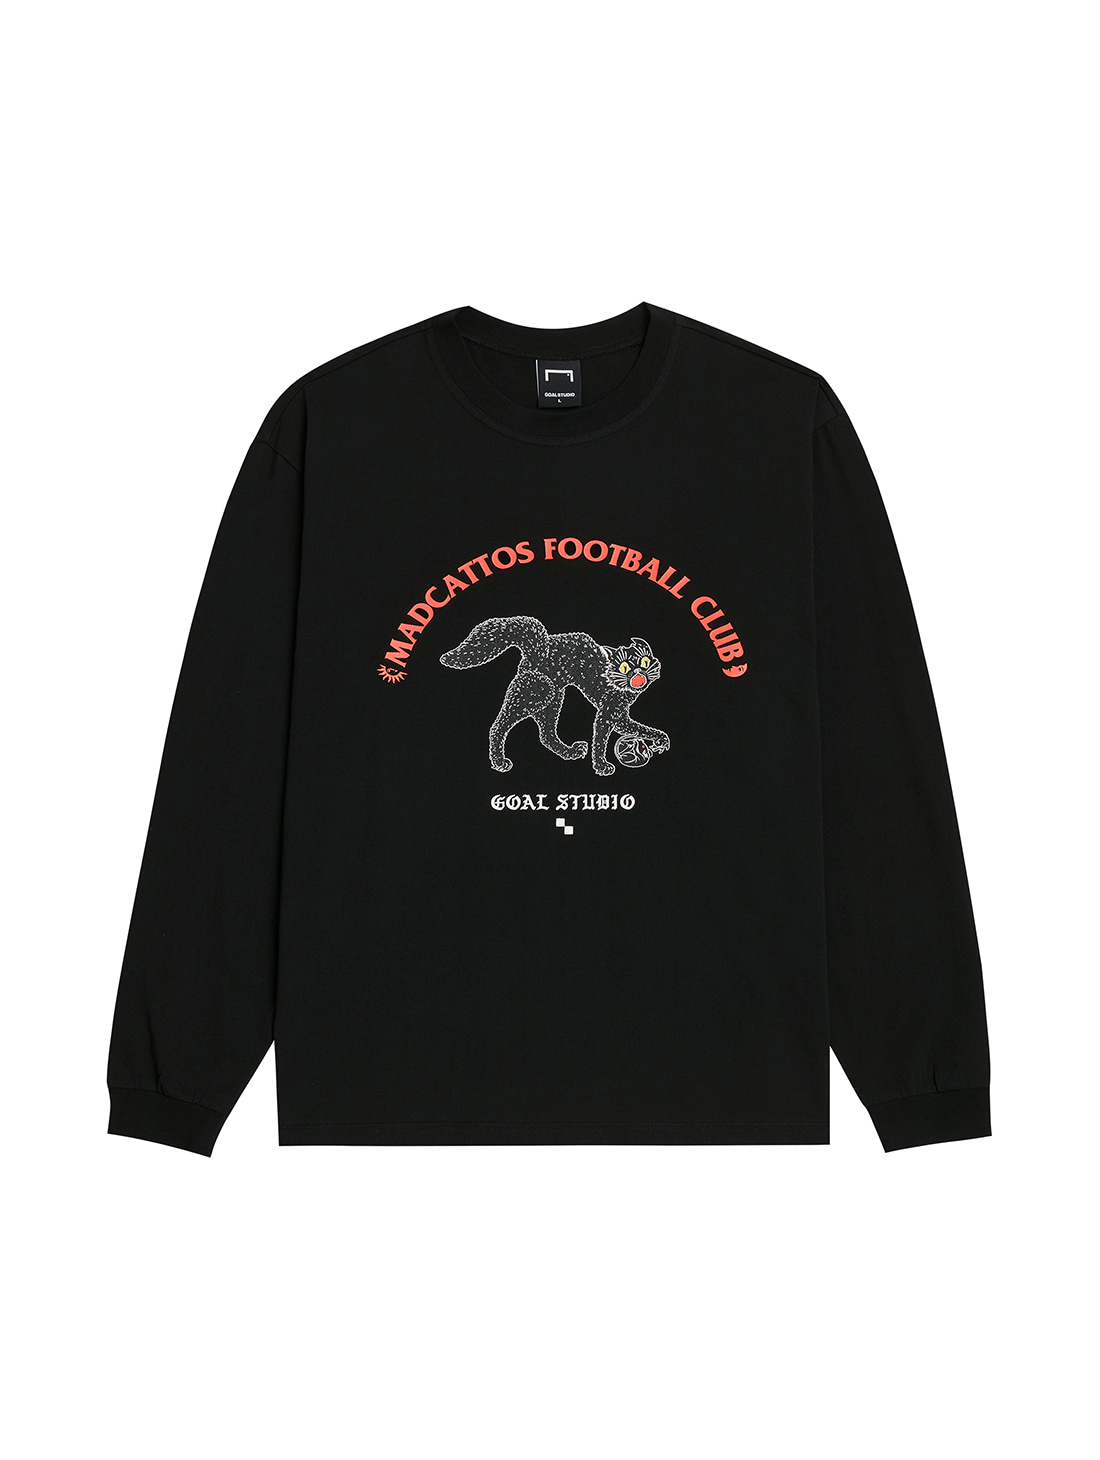 GOALSTUDIO MC GRAPHIC LONG SLEEVE TEE - BLACK